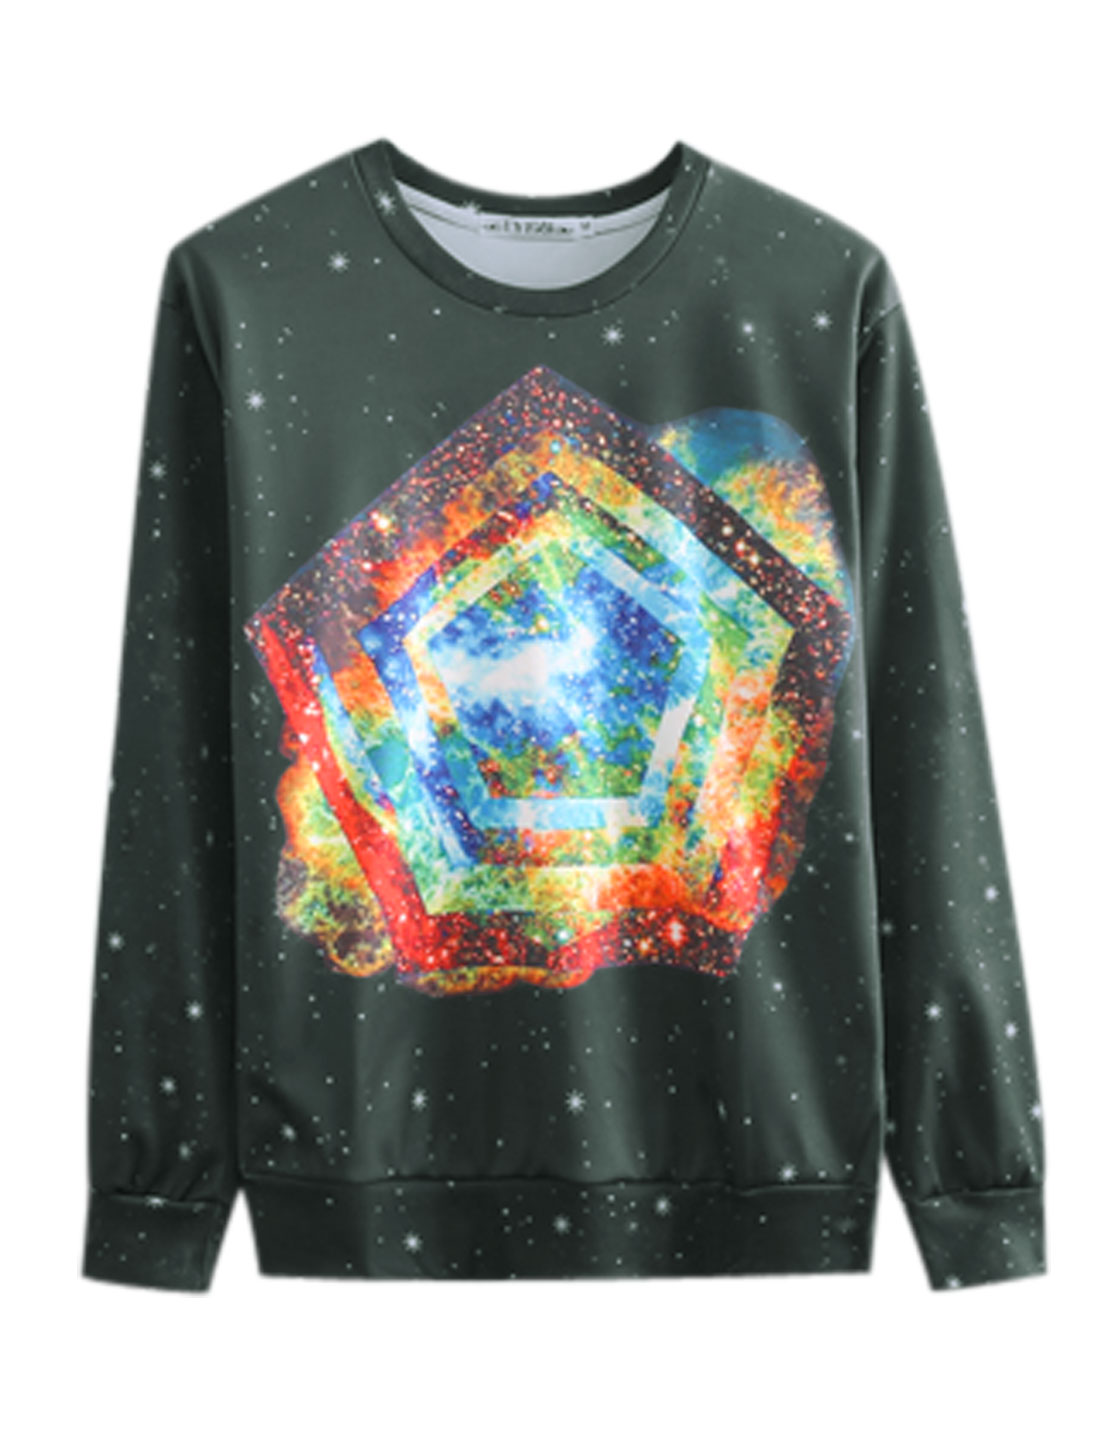 Men Black Pullover Galaxy Geometric Snowflake Prints Long Sleeves Sweatshirt M